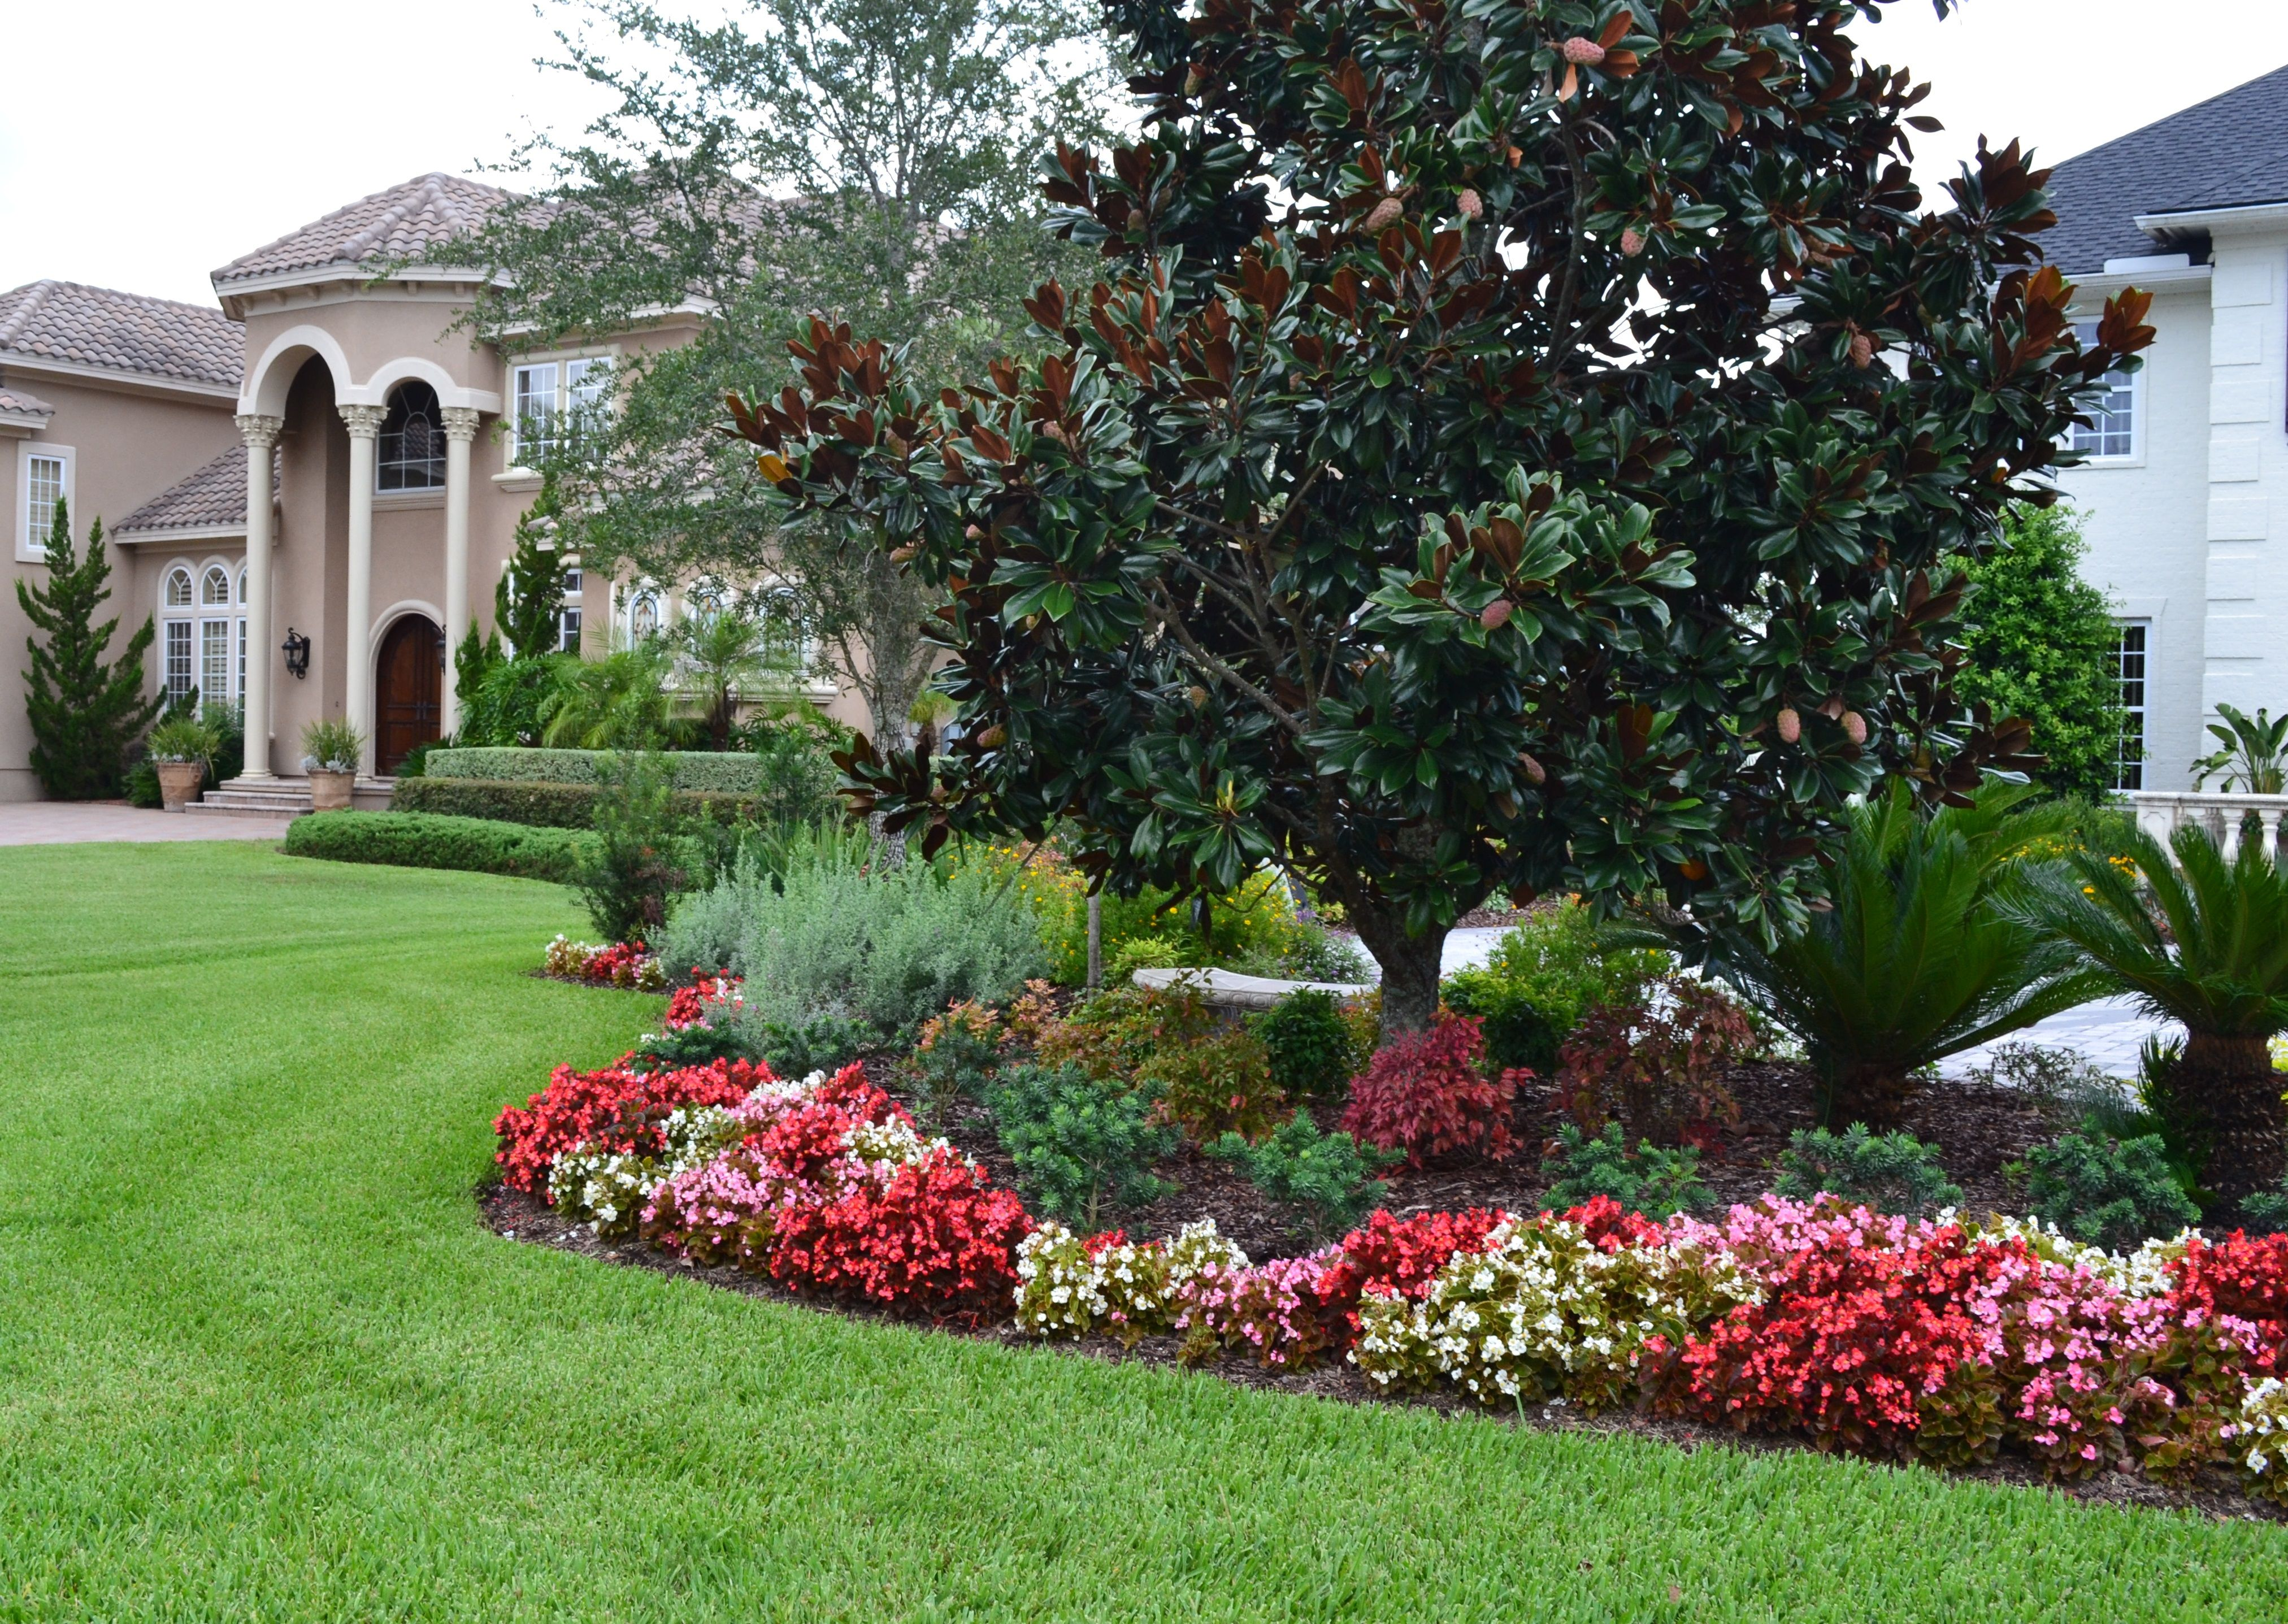 Landscaping idea begonia flower bed gives great contrast for Flower garden landscape